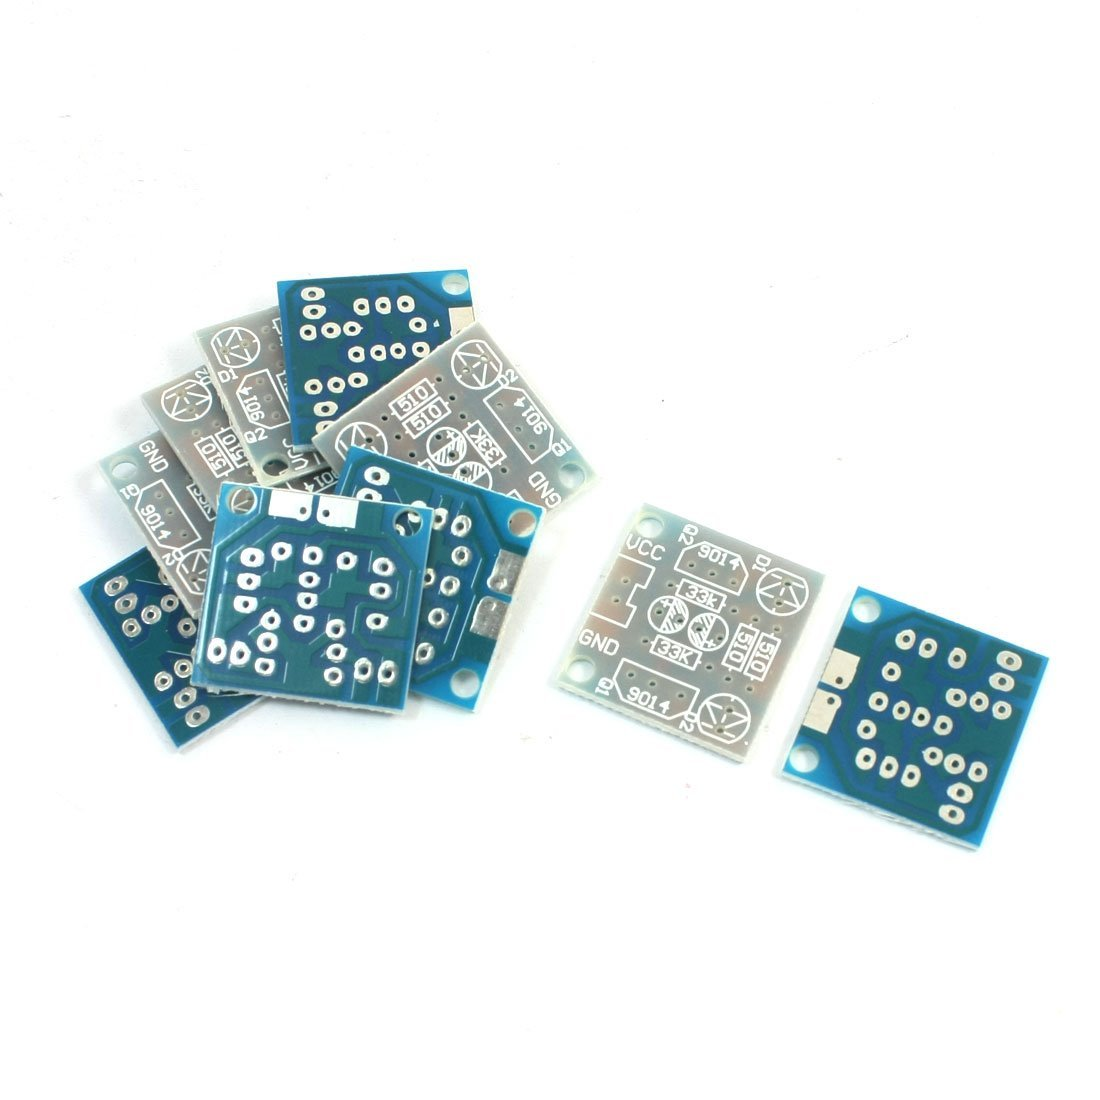 Cheap Simple Led Driver Circuit Find Watt View 3 Get Quotations 10pcs 5mm Flash Light Kit Pcb Bare Board